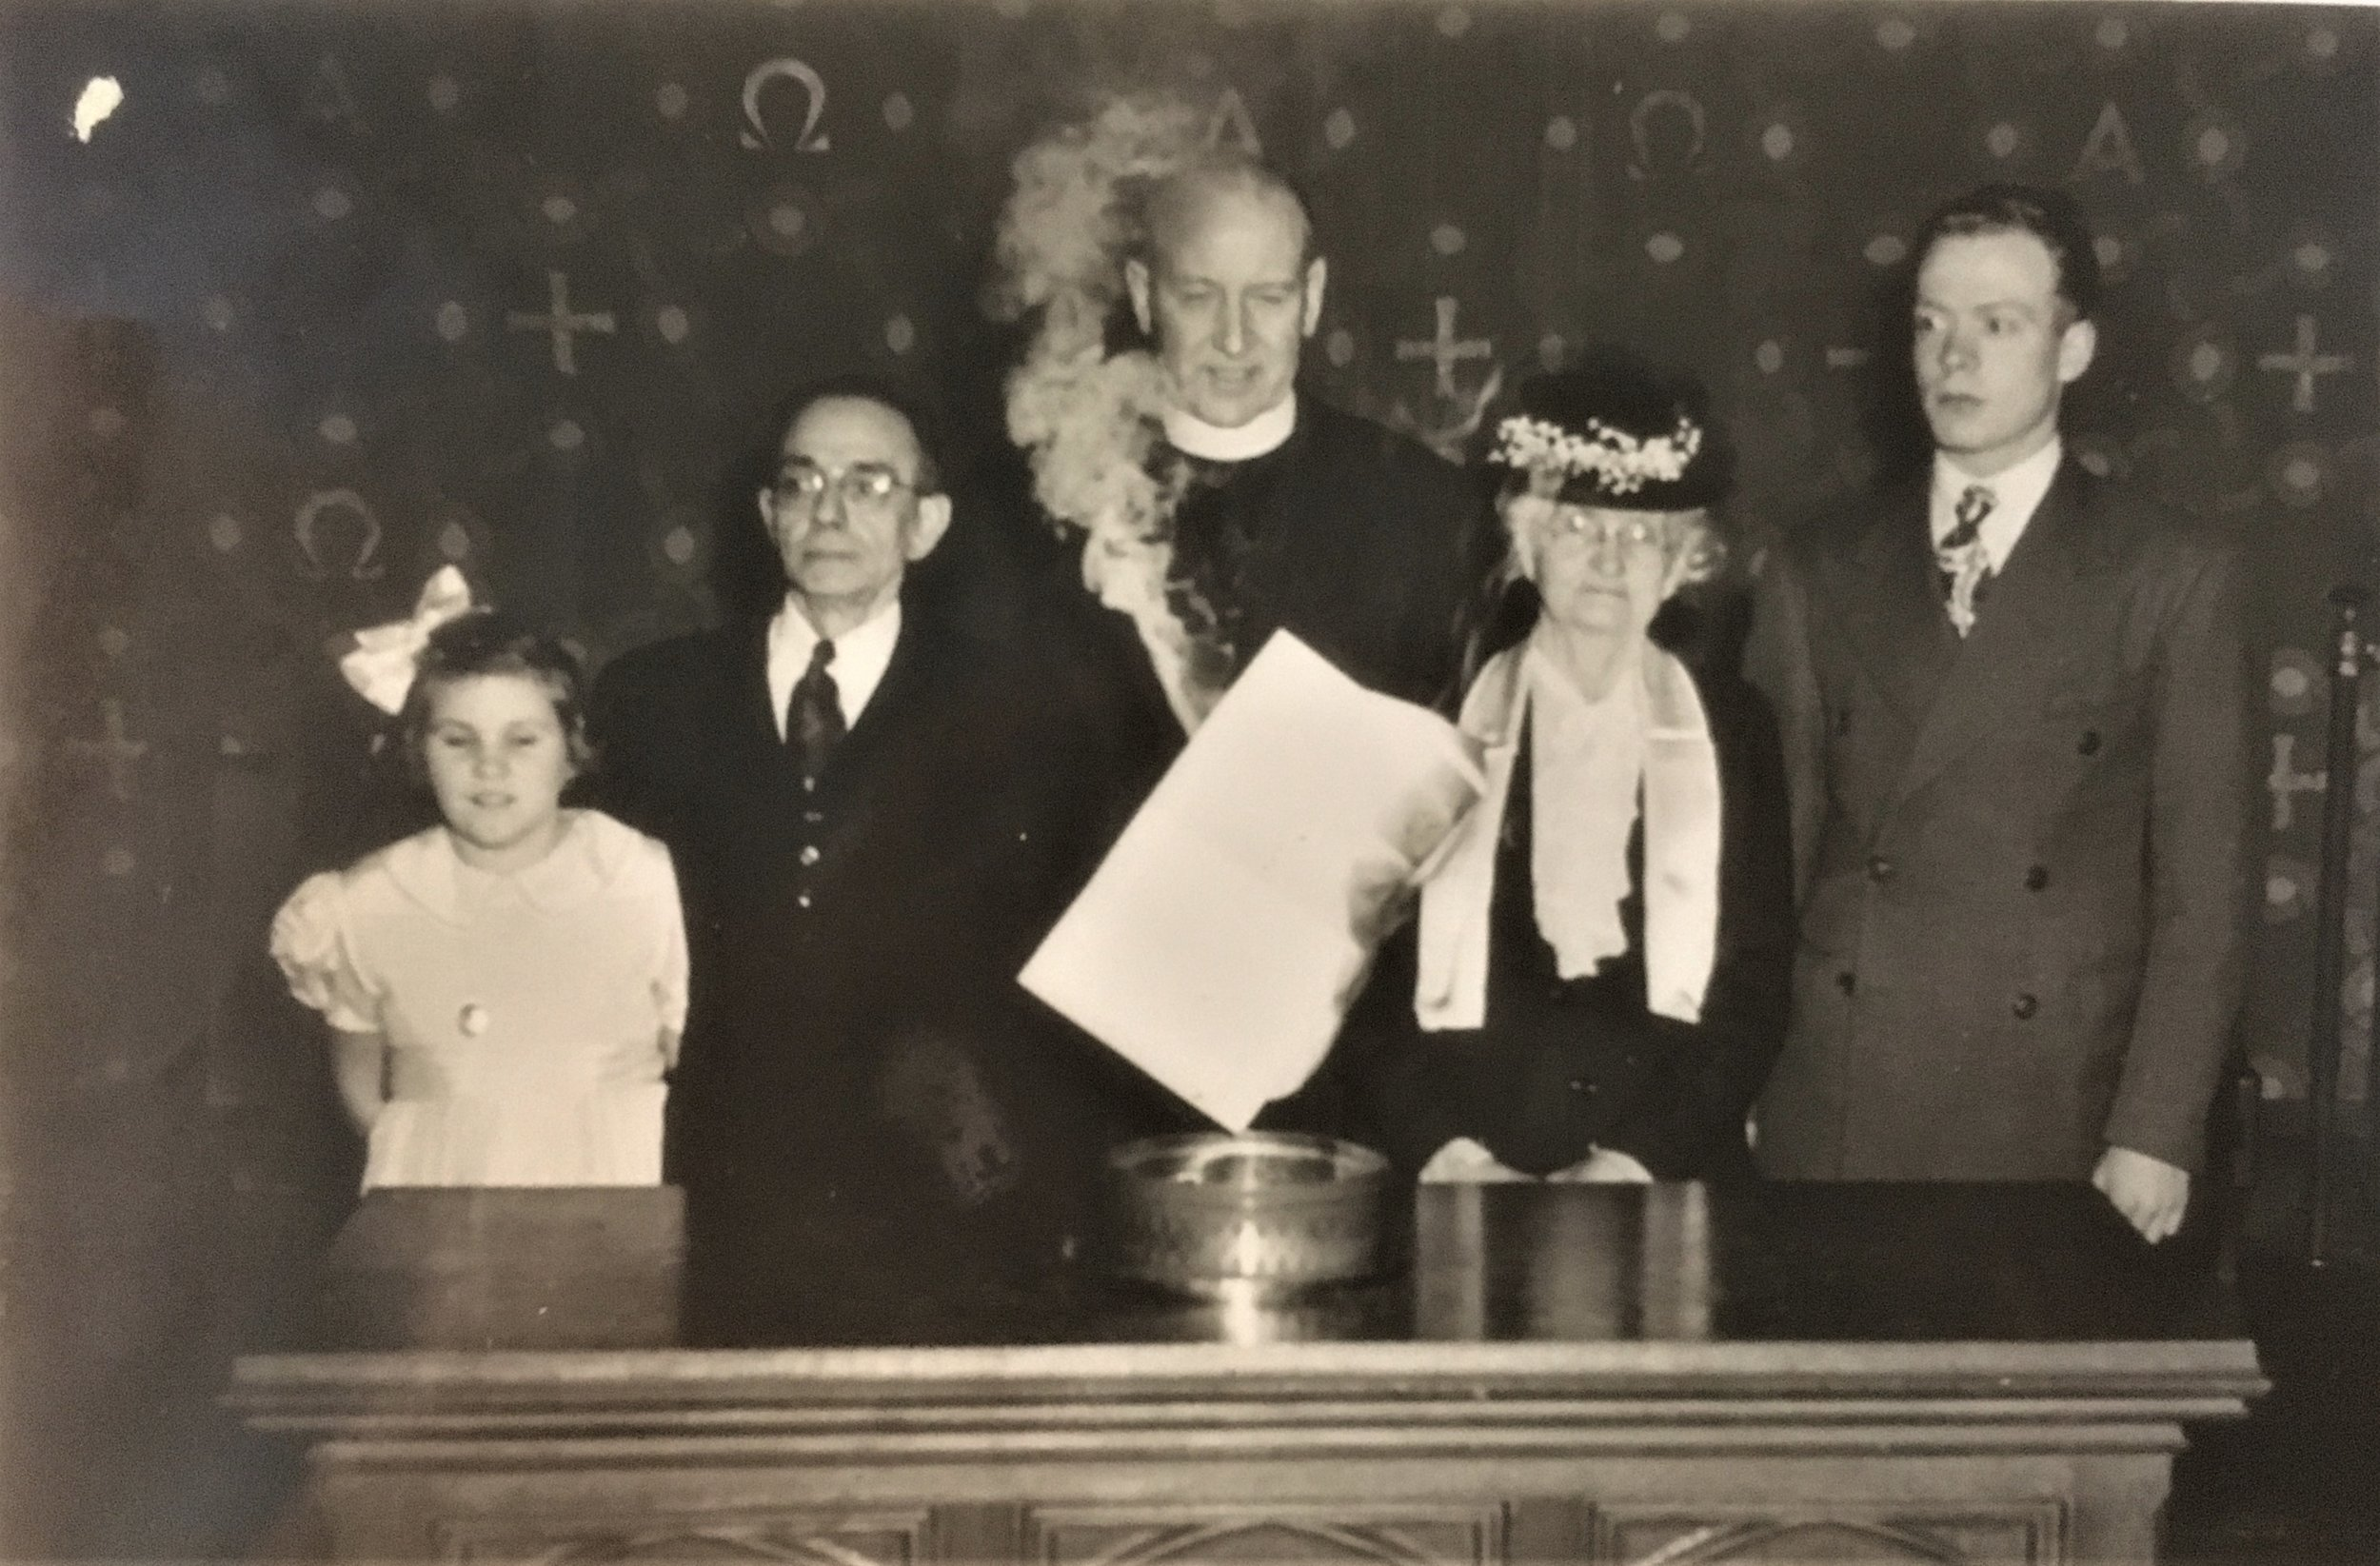 Rev. Joyce sets fire to the mortgage deed, surrounded by (L to R): Marjorie Cooper, representing the Sunday School; Mr. Harris Way, Clerk of Session; Mrs. Clement King, oldest living member; and James Goodwin, representing Church Youth. 1947